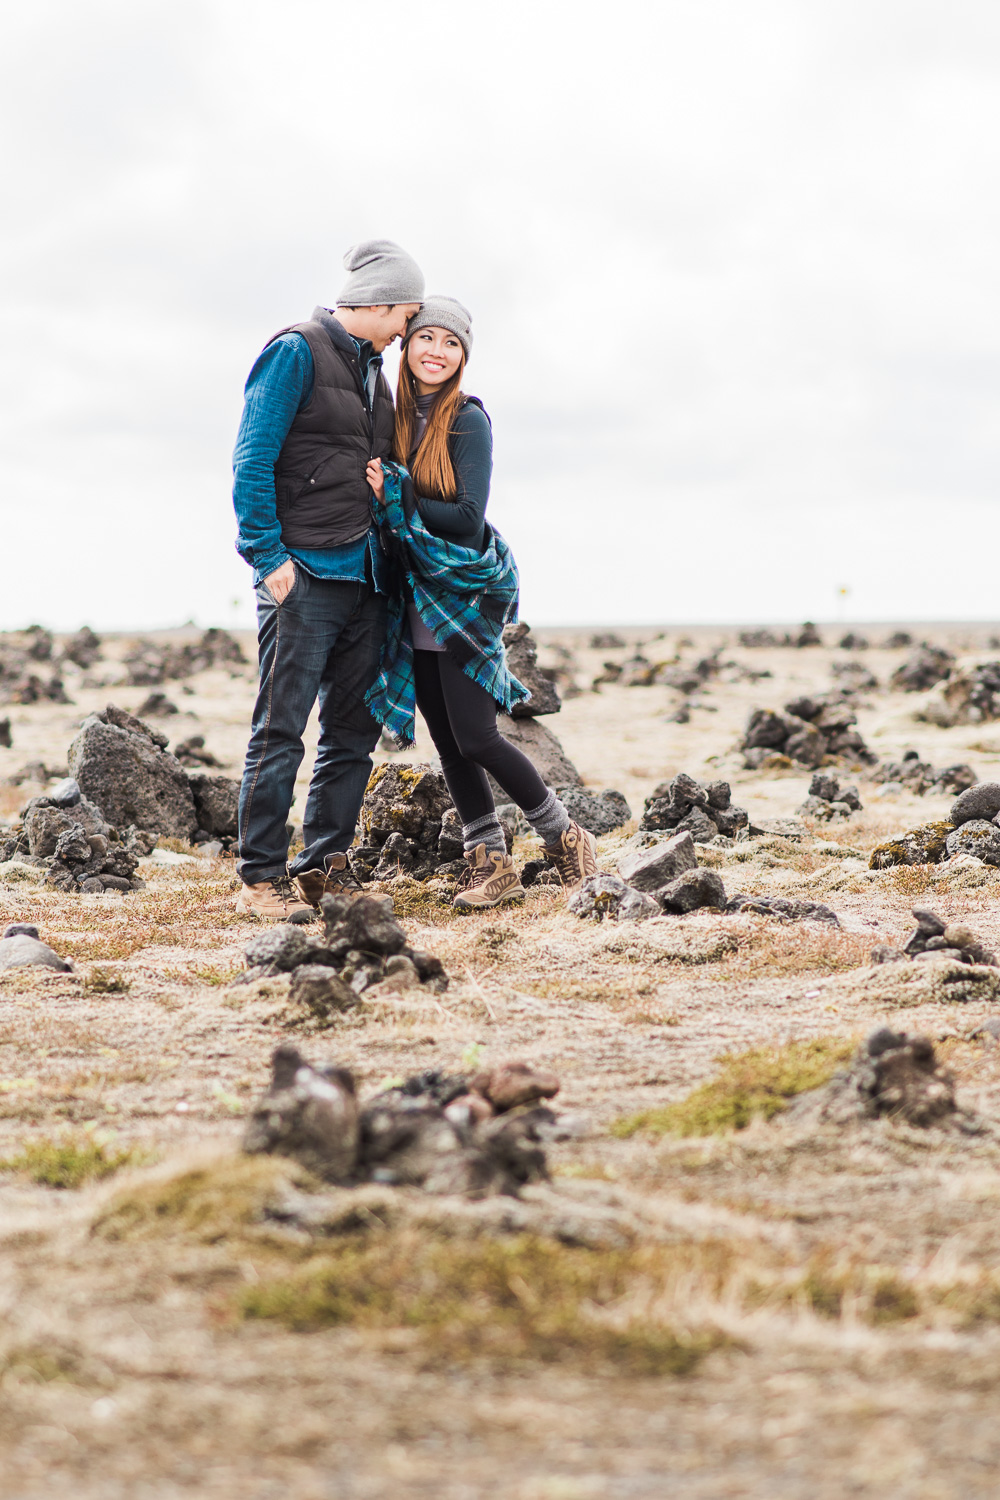 Tracey and Bi standing in lava field in Iceland